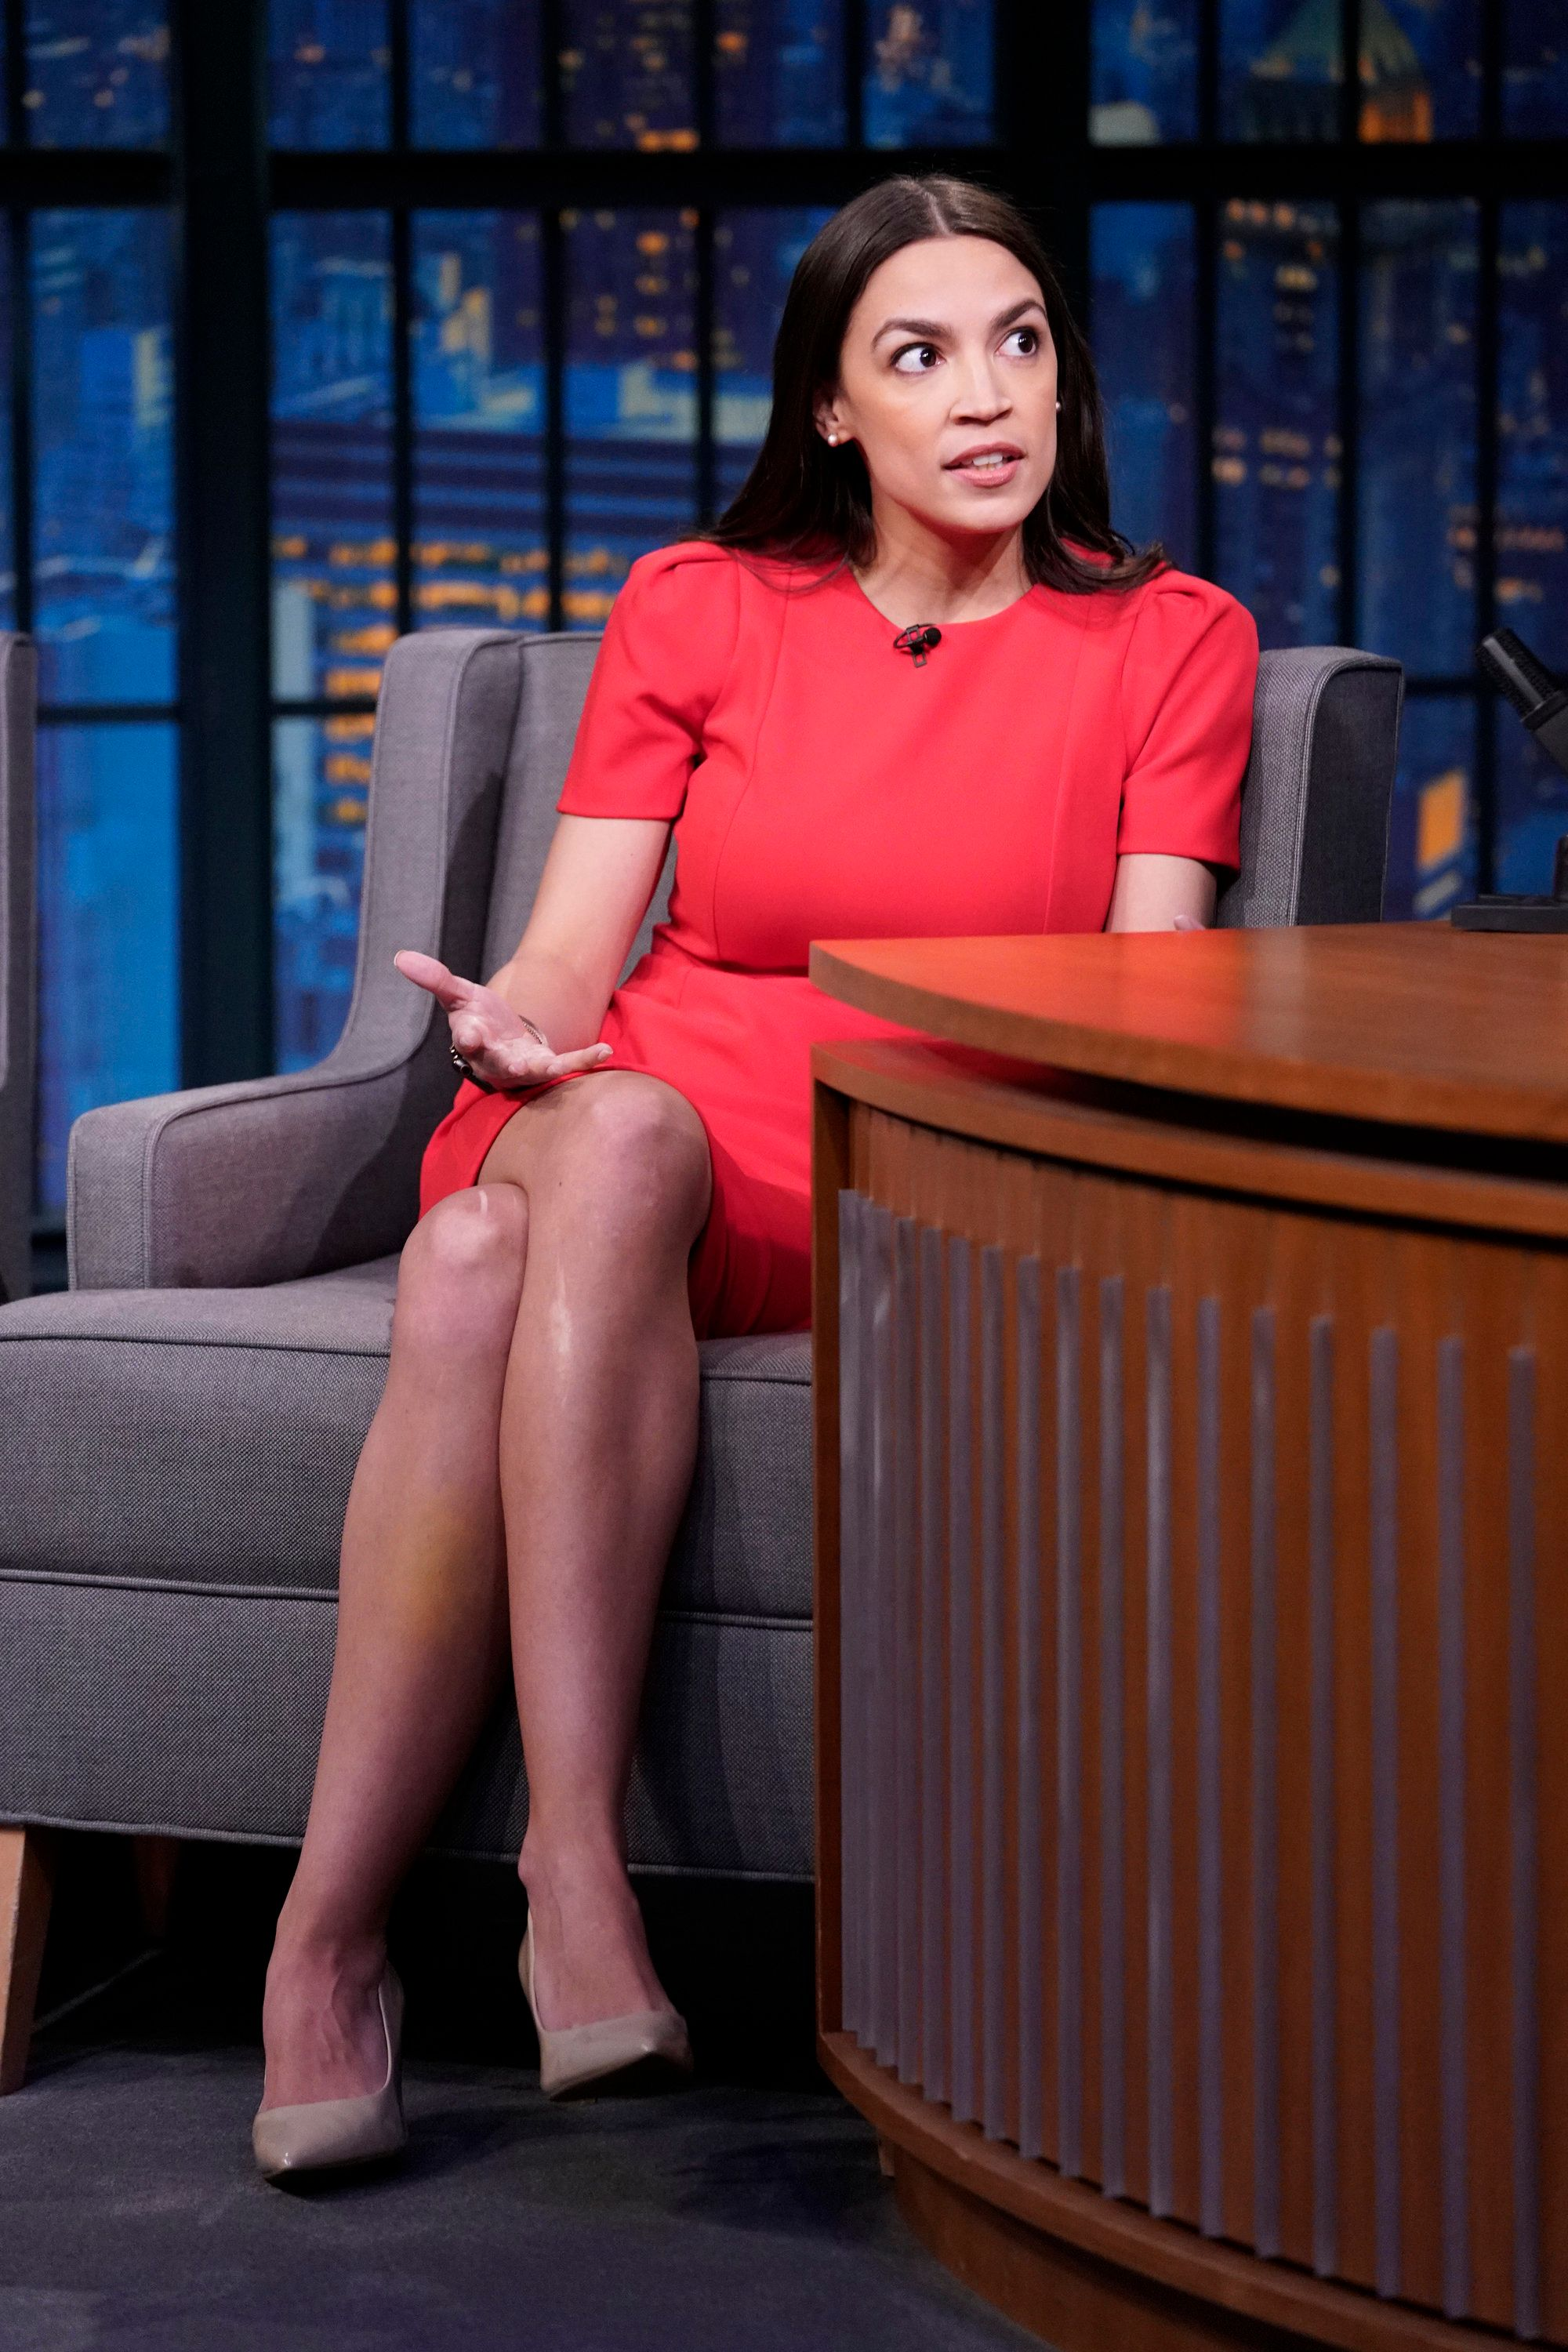 LATE NIGHT WITH SETH MEYERS -- Episode 816 -- Pictured: (l-r) U.S. Rep. Alexandria Ocasio-Cortez during an interview on March 21, 2019 -- (Photo by: Lloyd Bishop/NBC/NBCU Photo Bank via Getty Images)